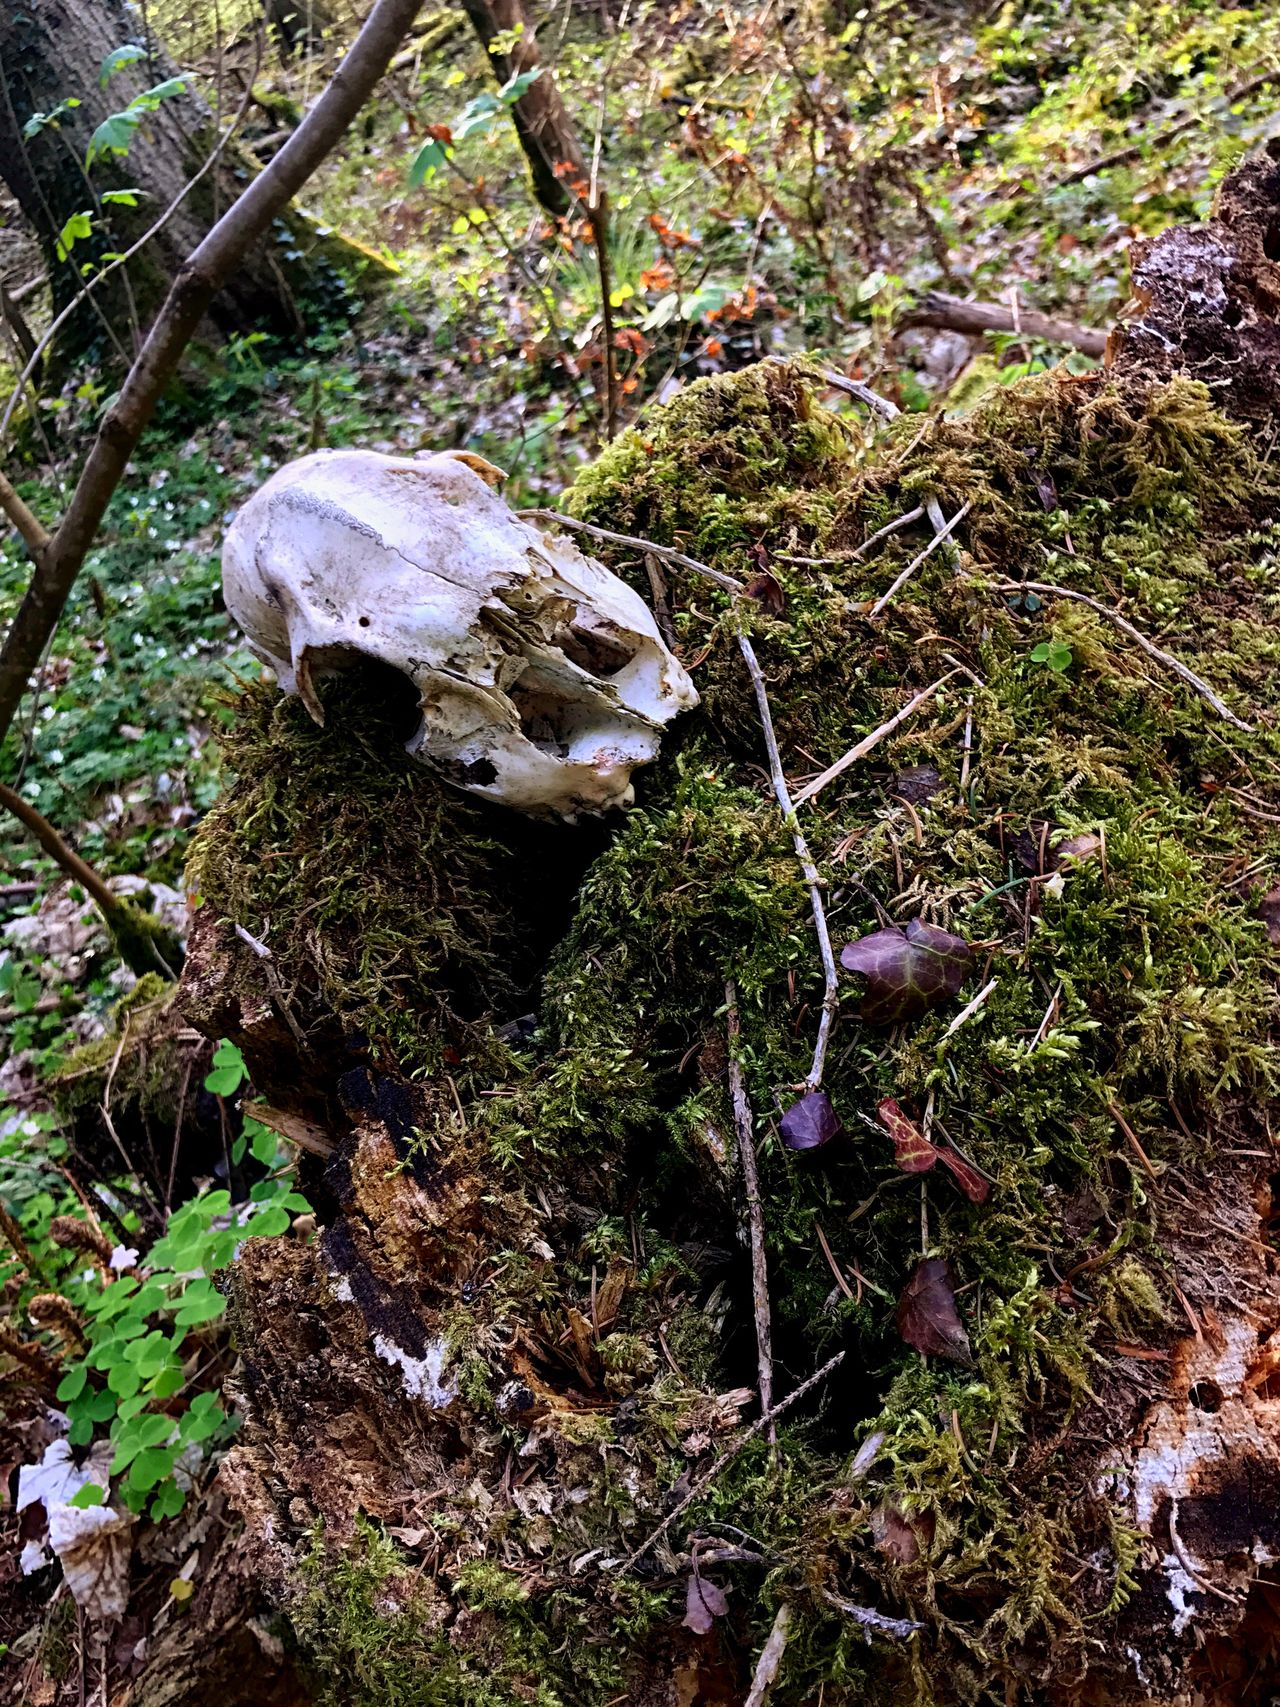 Skull Day Nature Outdoors Close-up dead RIP Skelett Head bones wood green wood